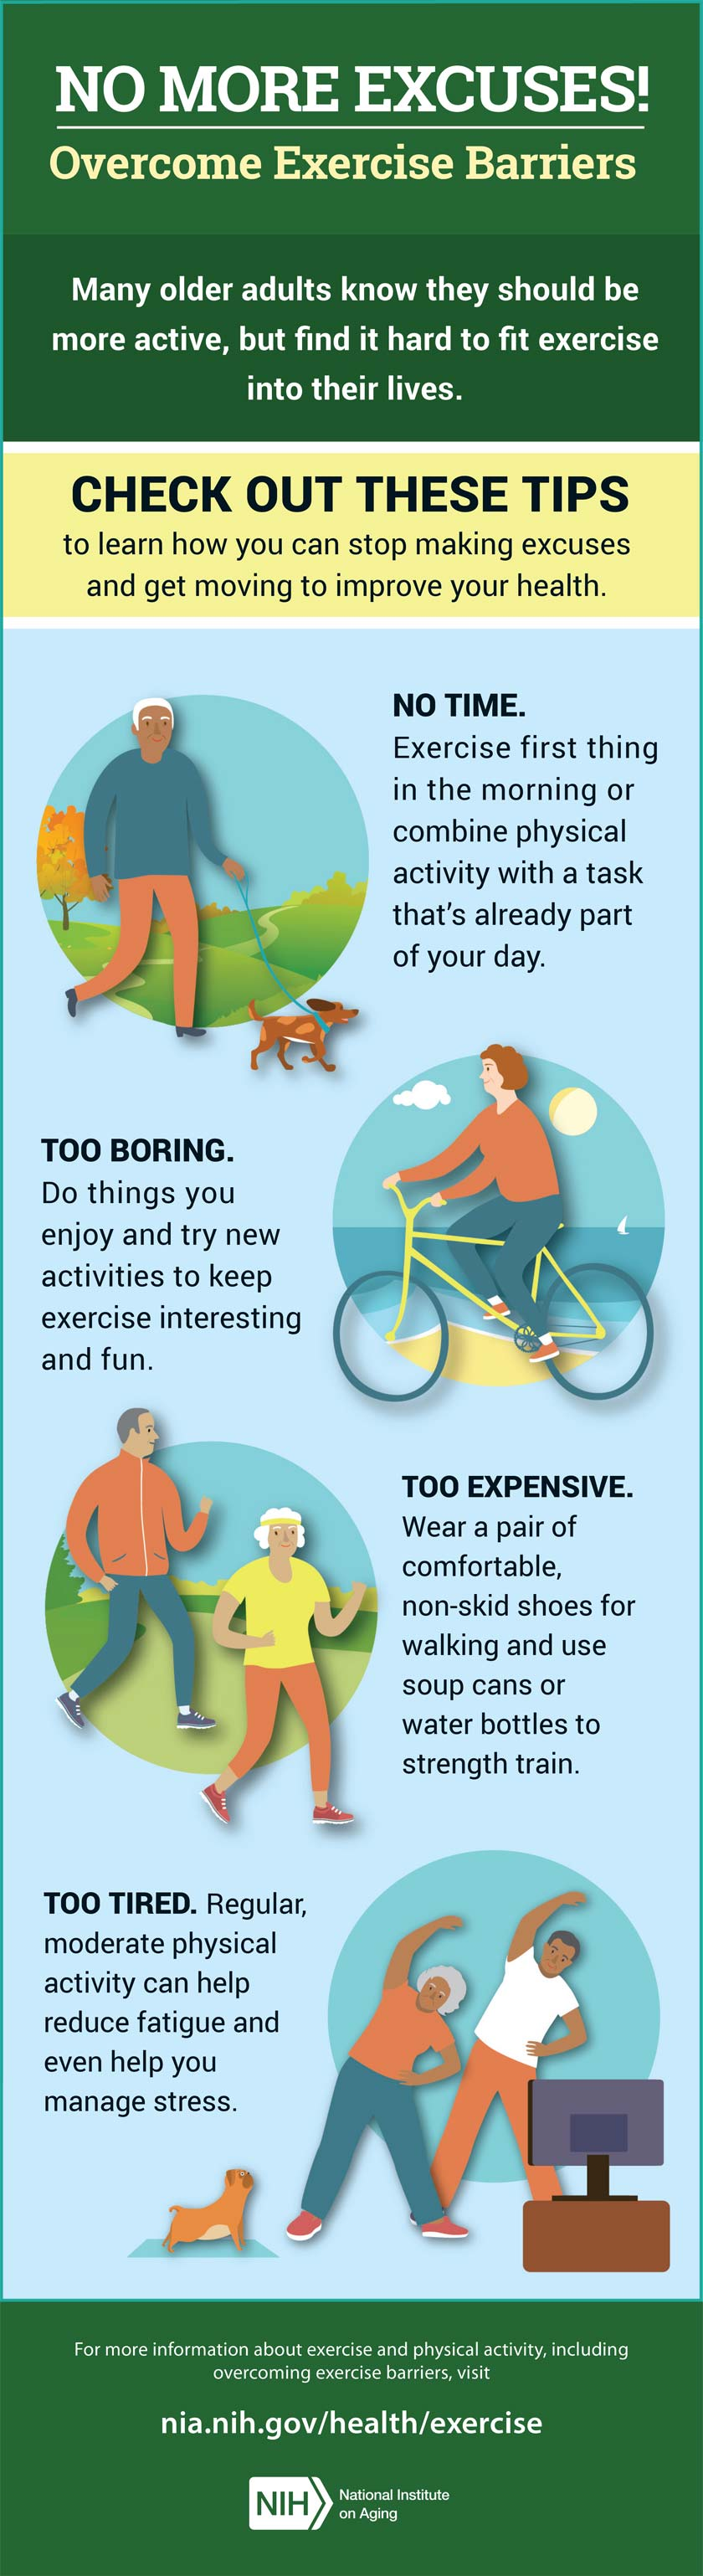 No more excuses! Overcome exercise barriers infographic. Full transcript below.